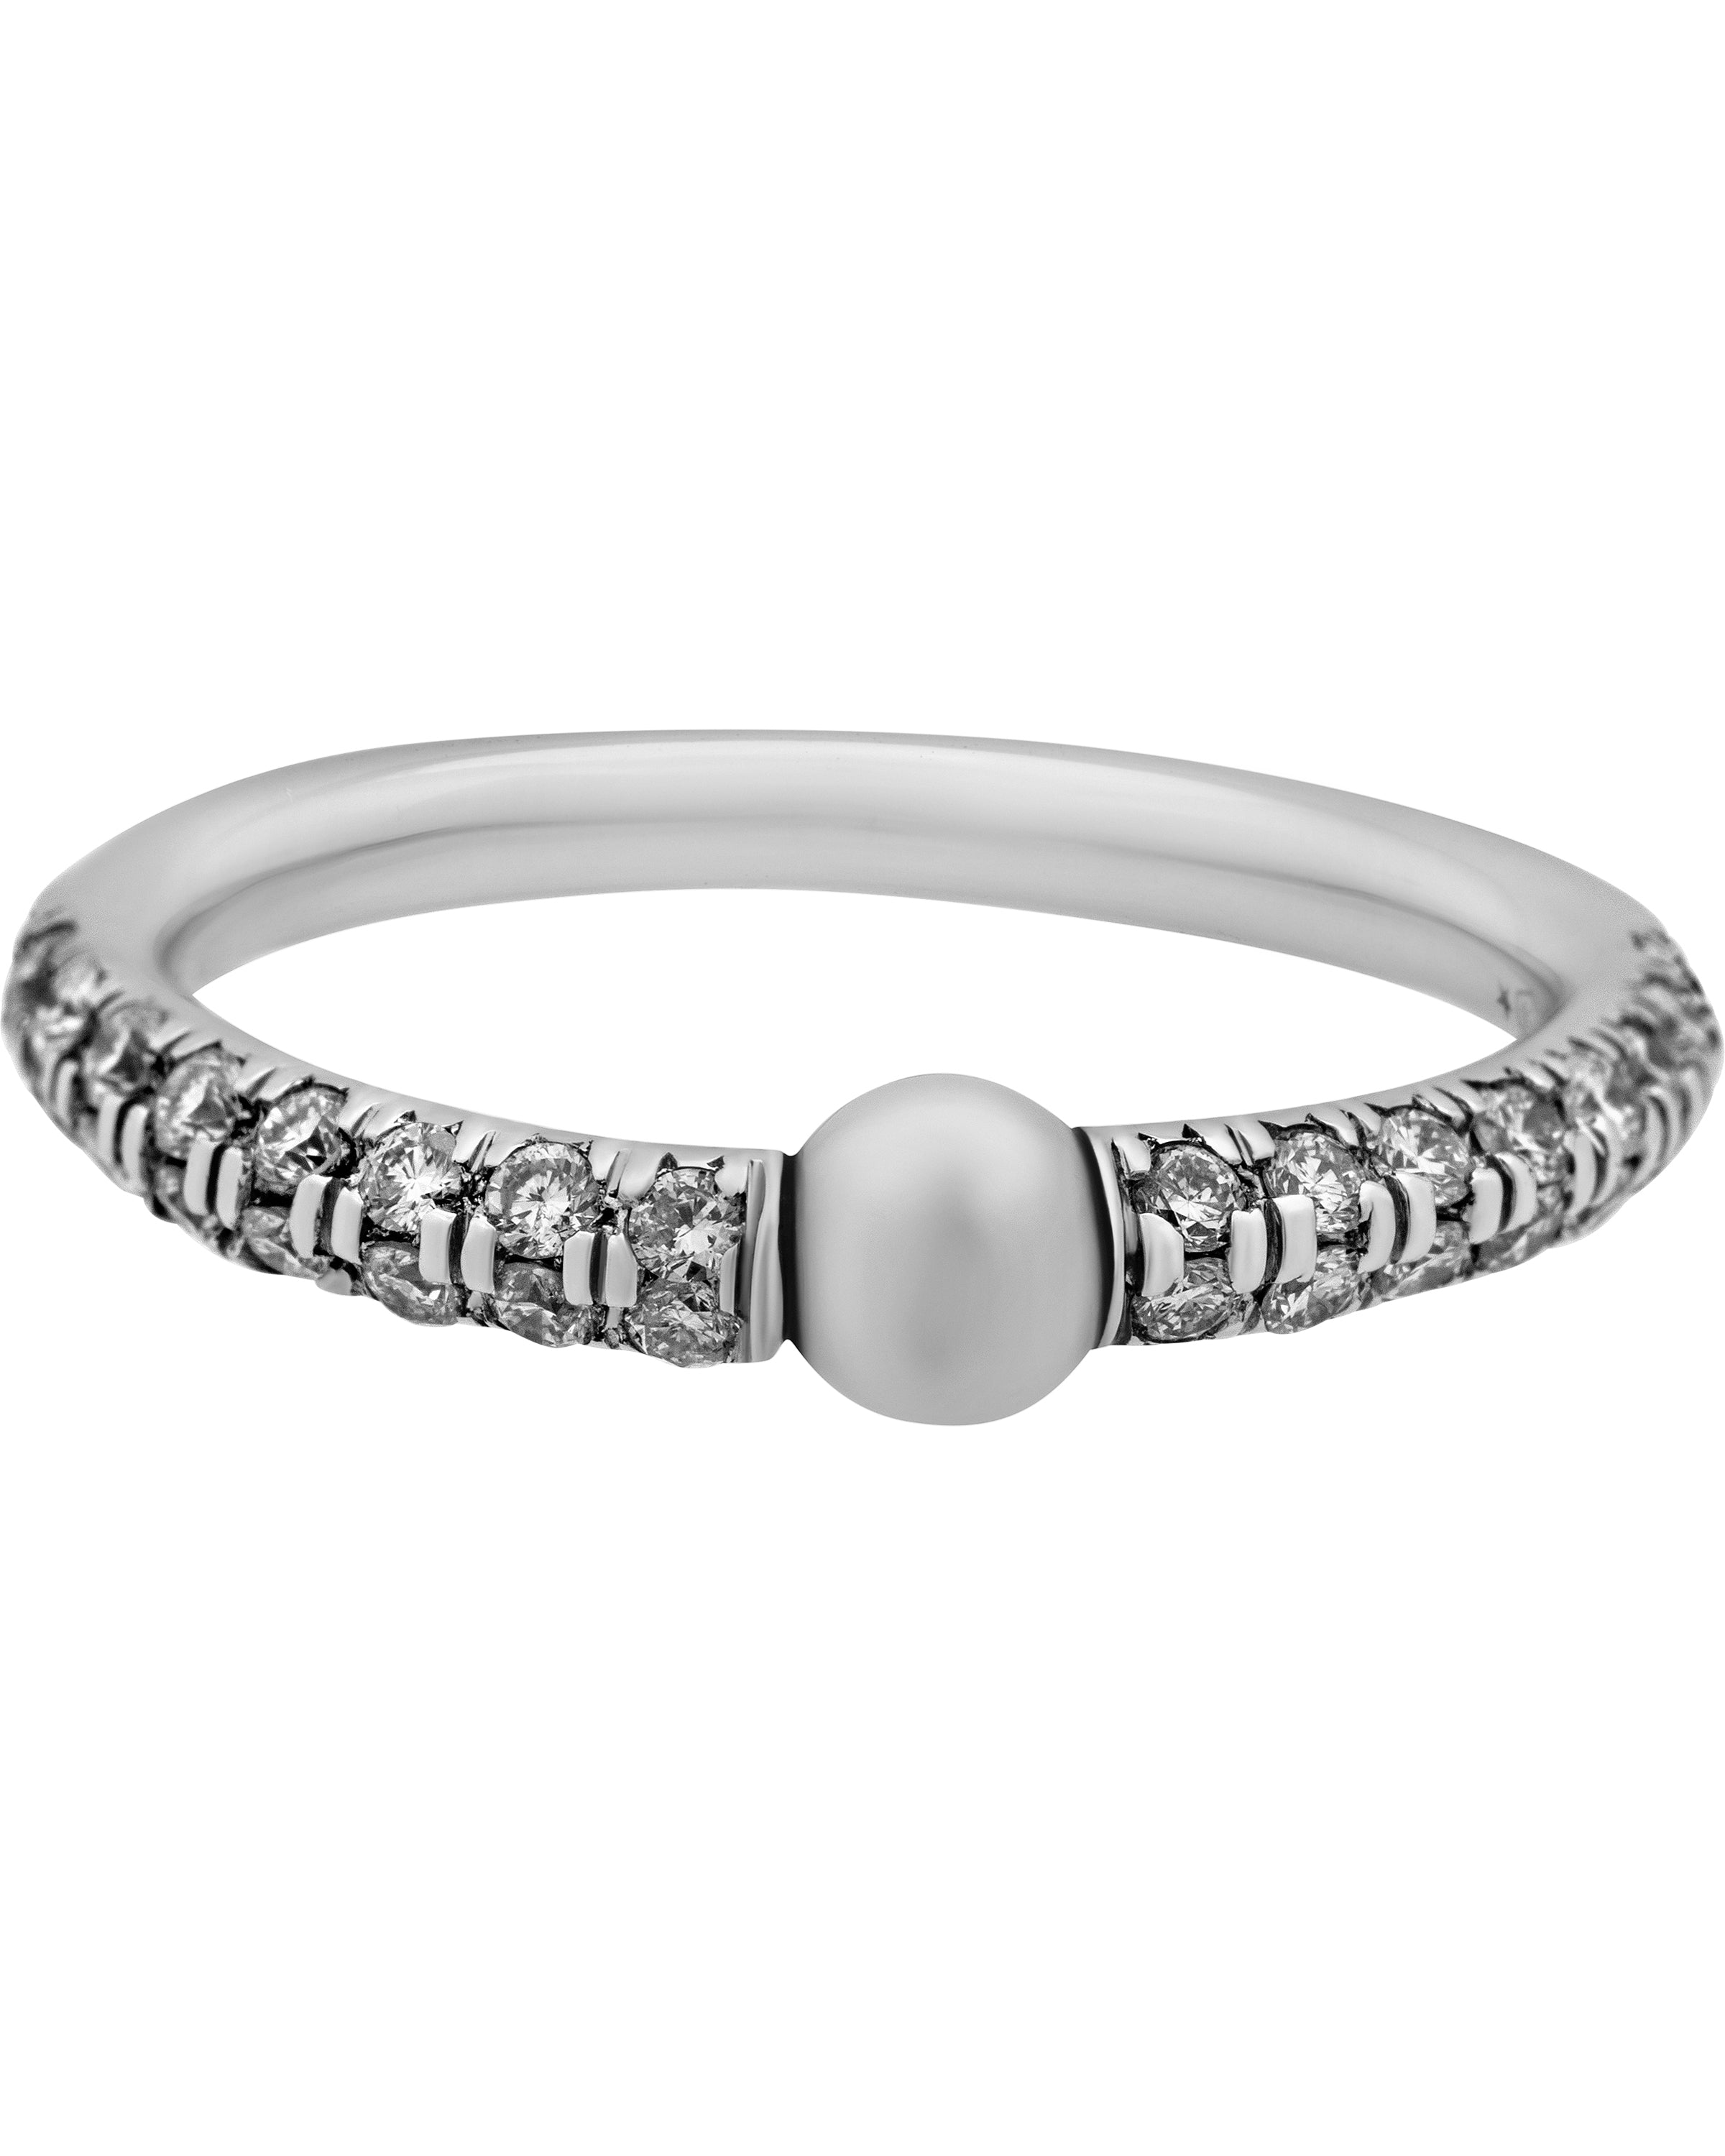 Mimi Milano 18k White Gold Diamond And White Freshwater Pearl Ring A364B1B